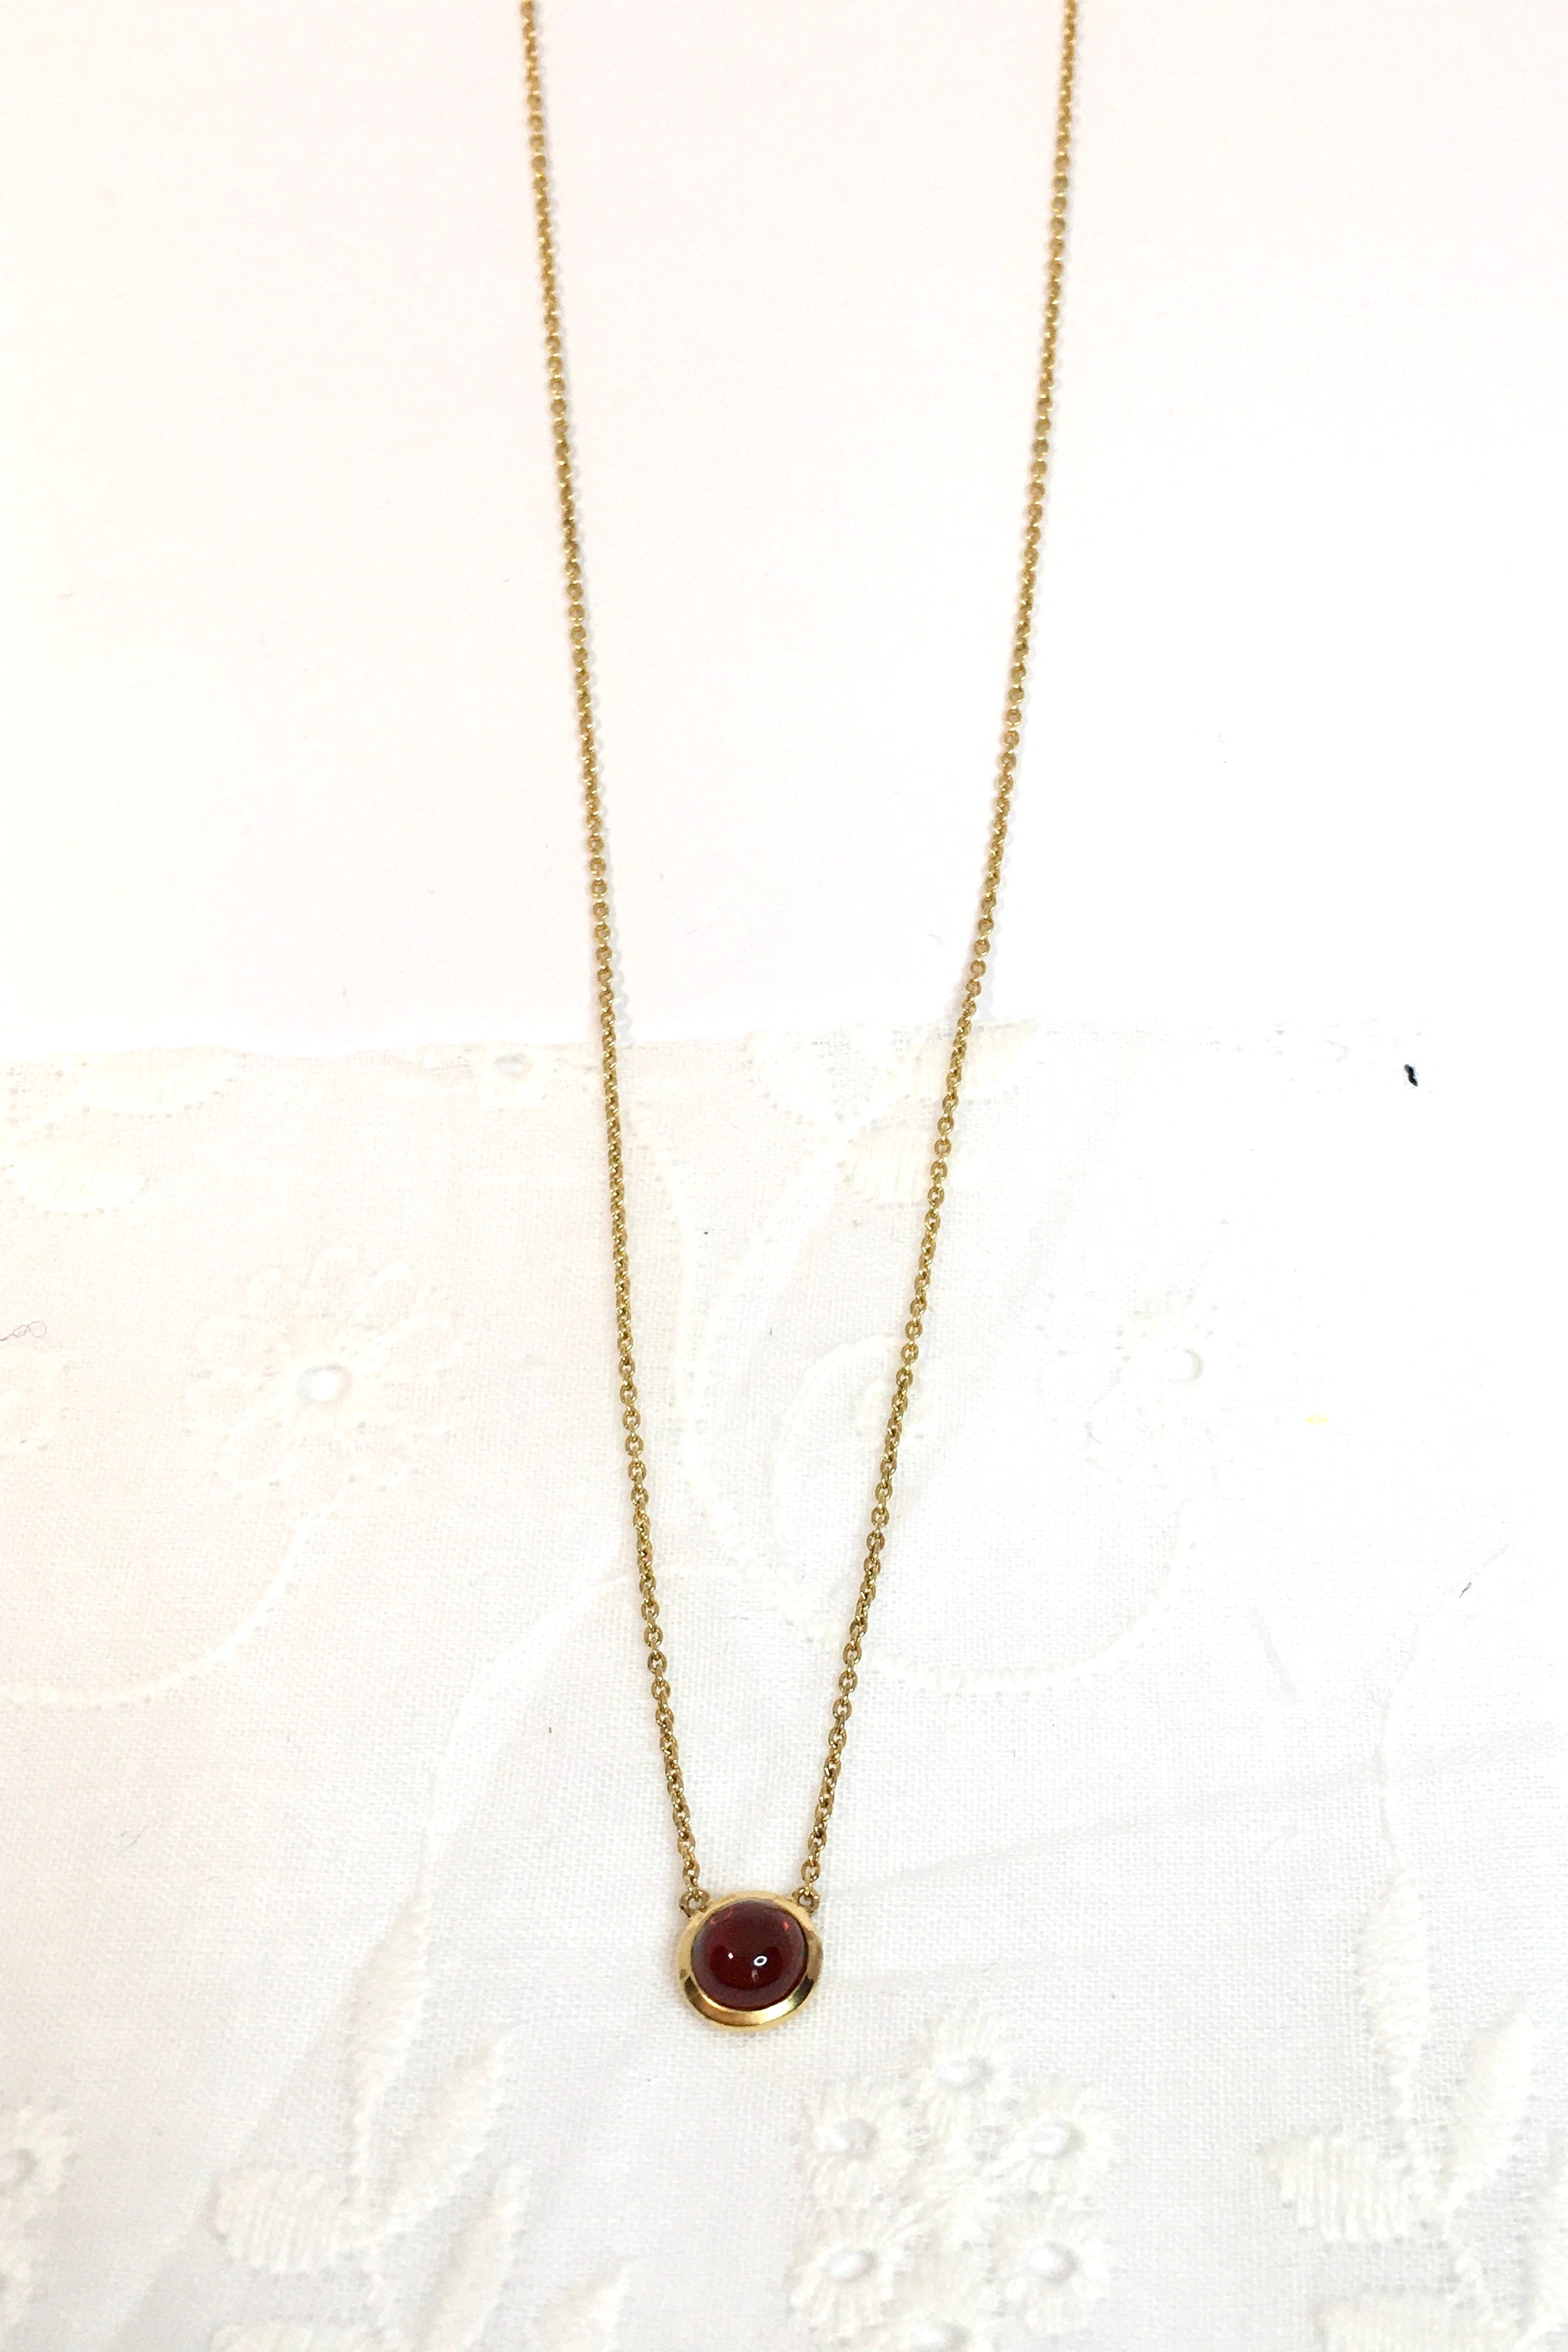 Vintage Pendant Garnet and Gold is a natural Garnet gemstone pendant featuring tiny round design and chain is 9ct gold plated onto 925 silver.